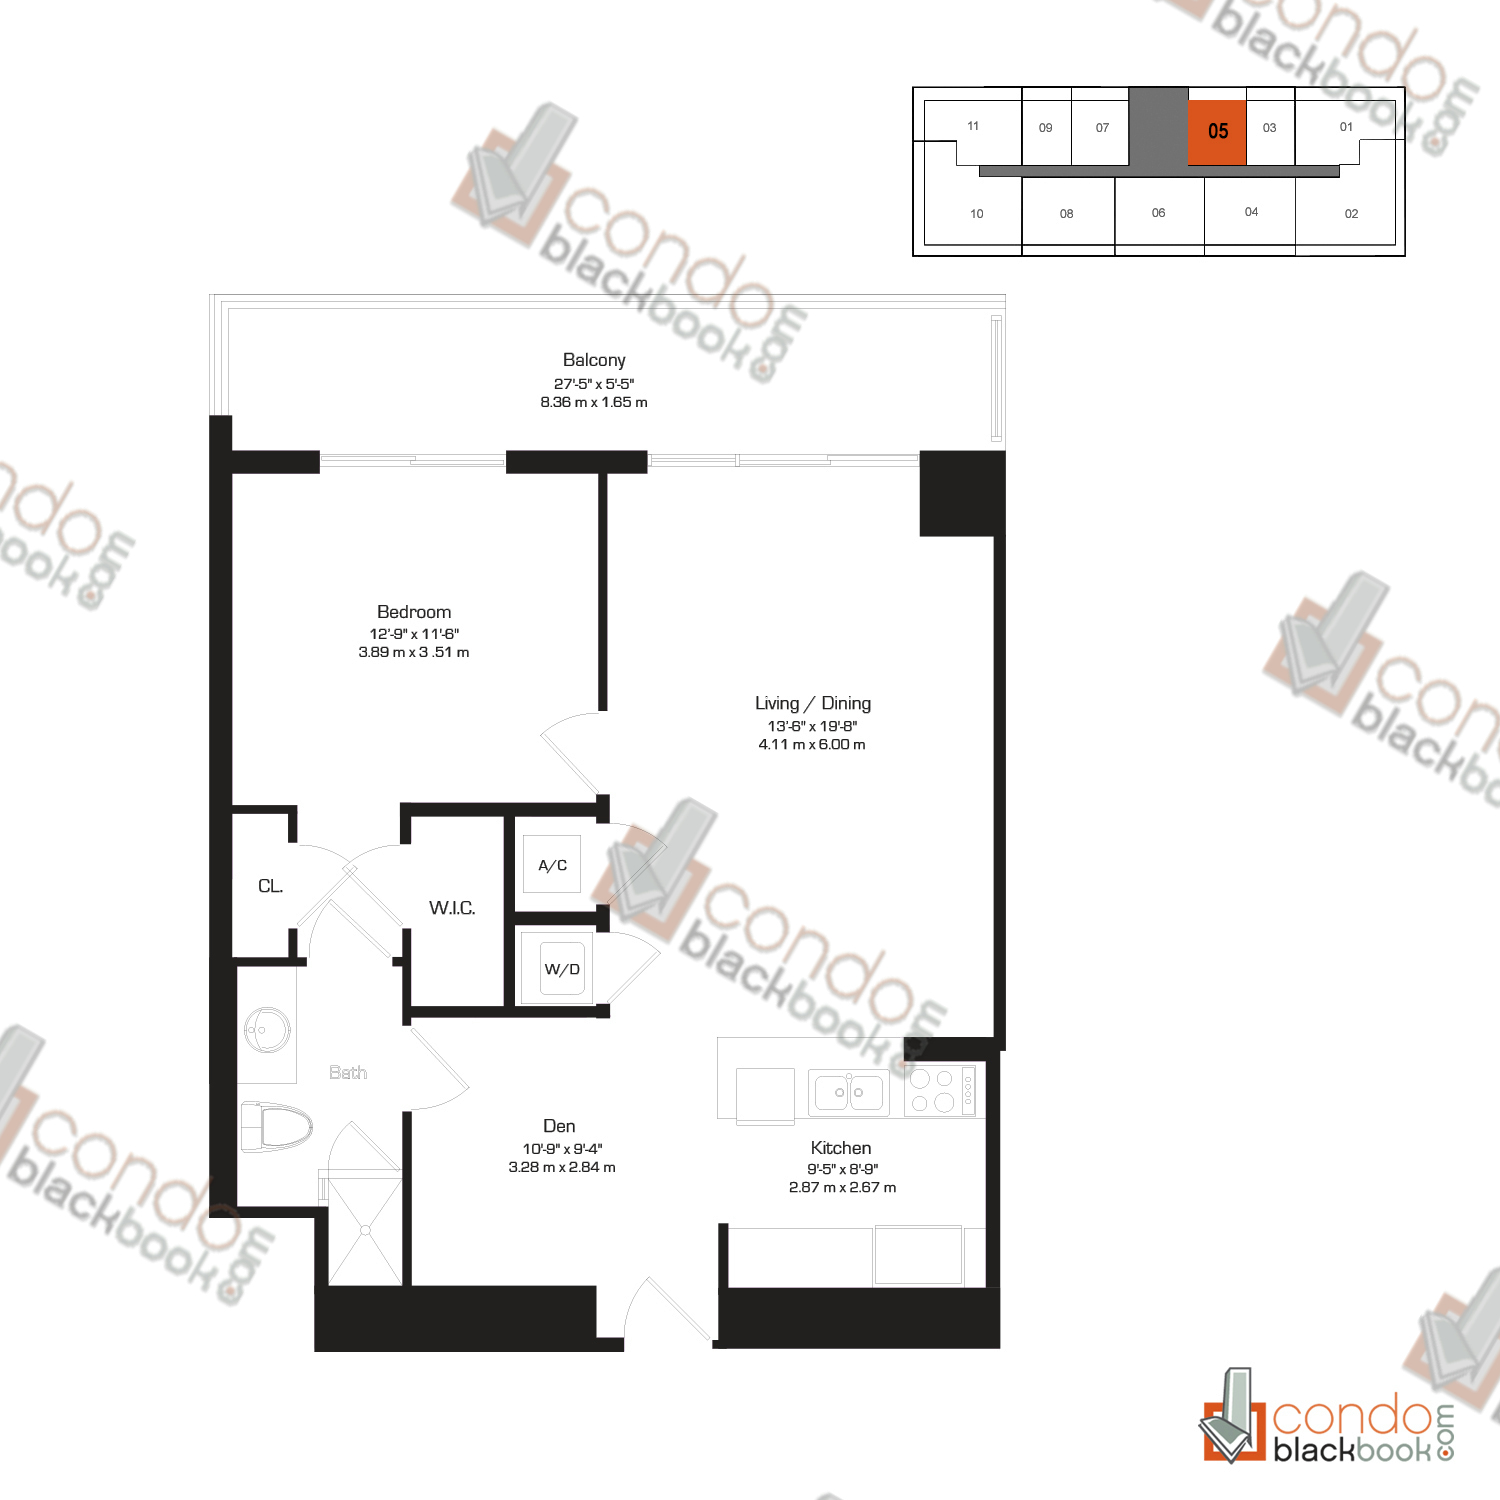 Floor plan for 50 Biscayne Downtown Miami Miami, model H, line 05, 1/1+Den bedrooms, 845 sq ft